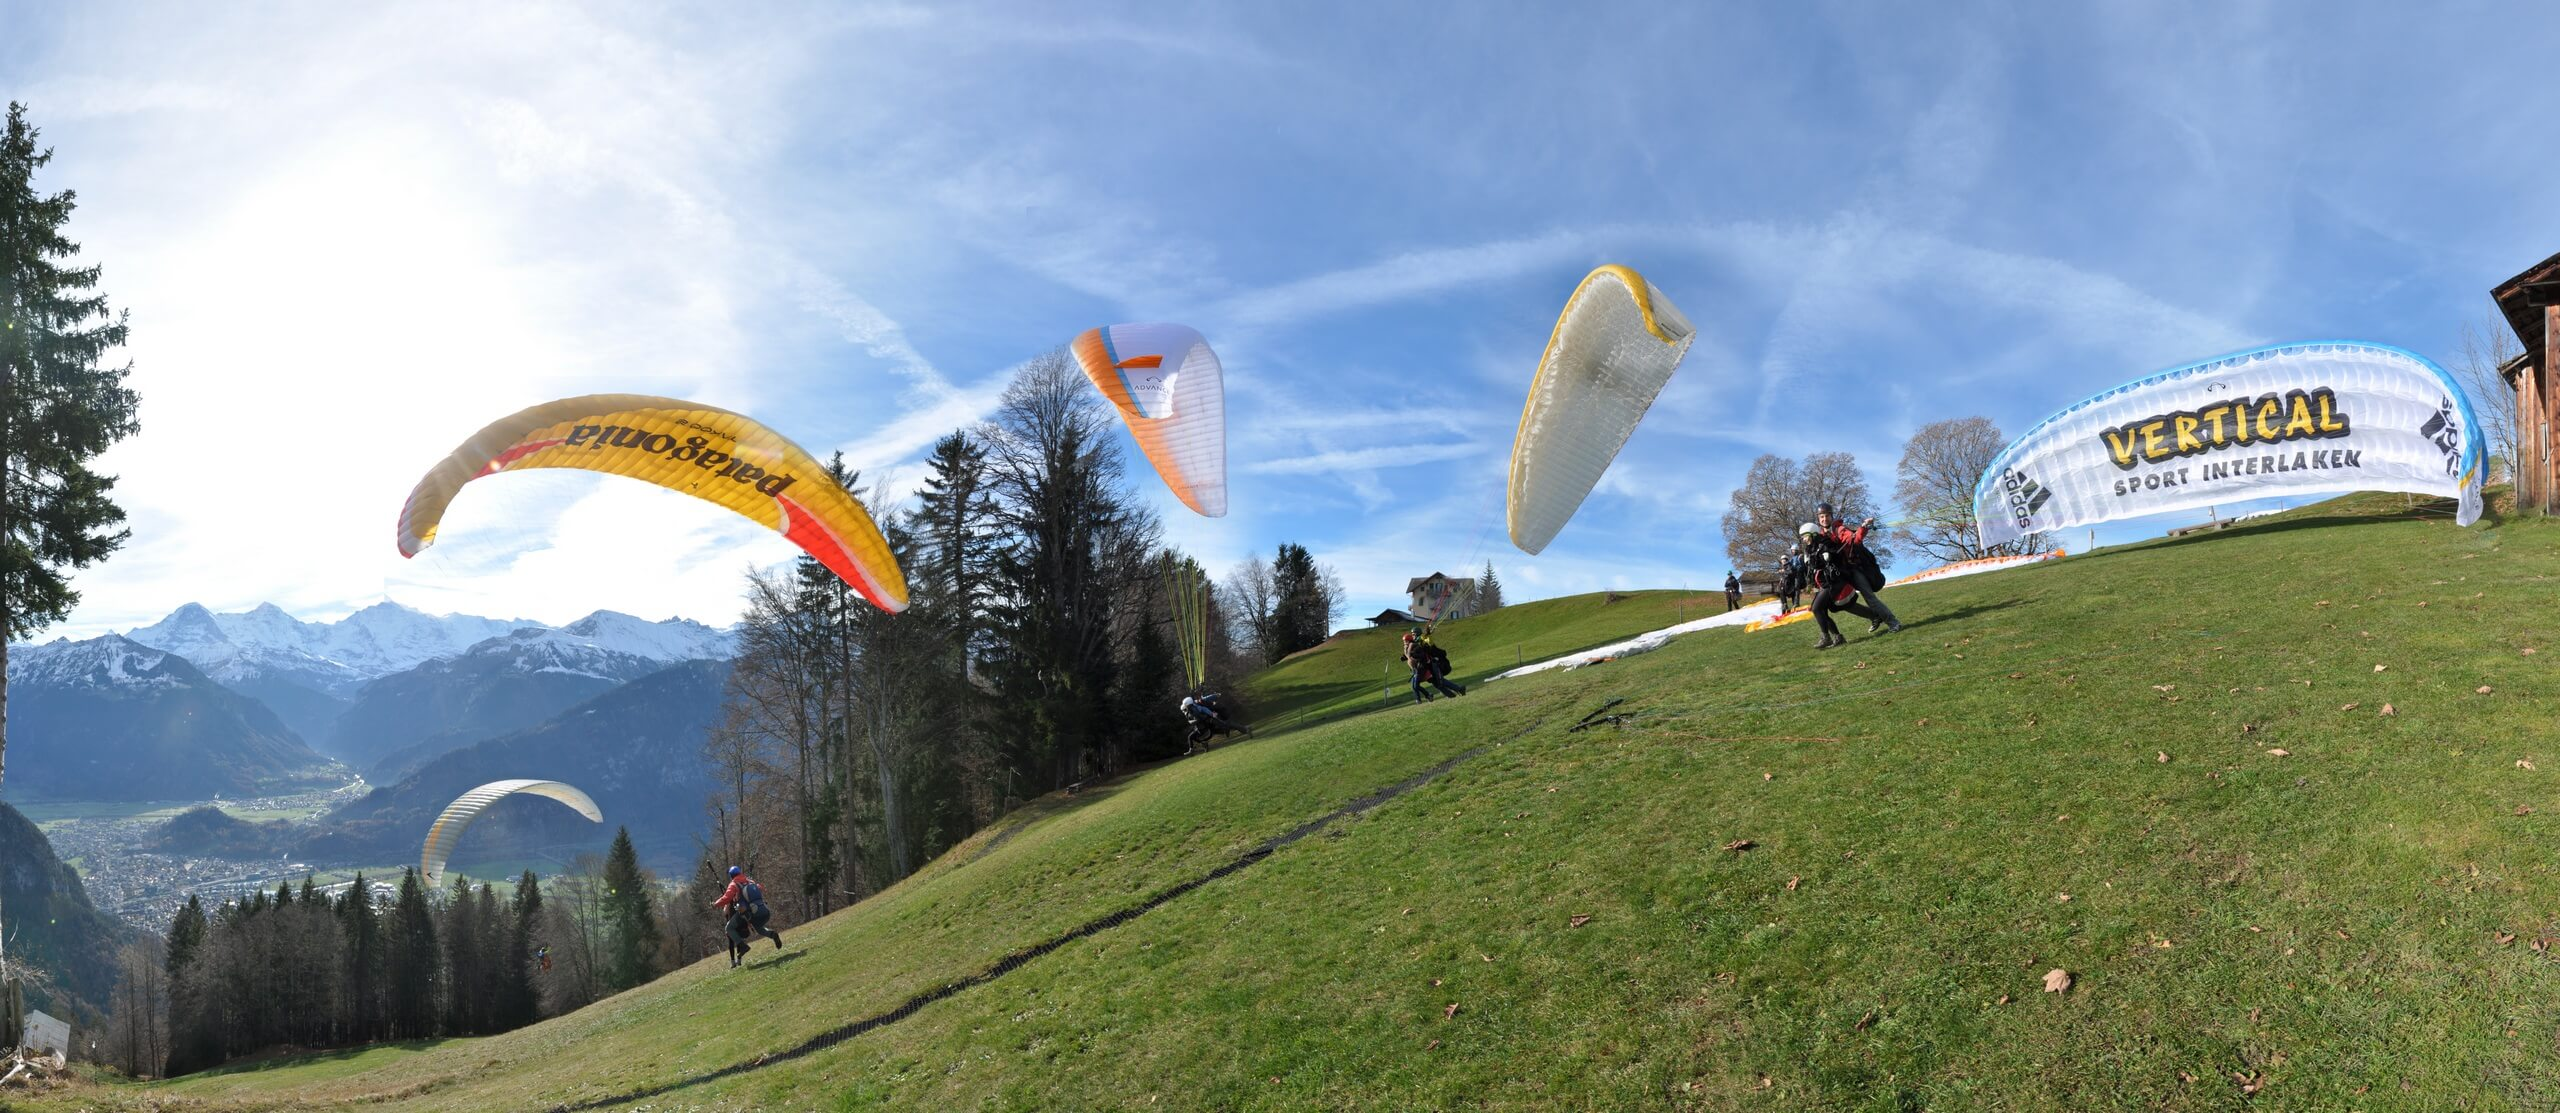 interlaken-twin-paragliding-sommer-fliegen